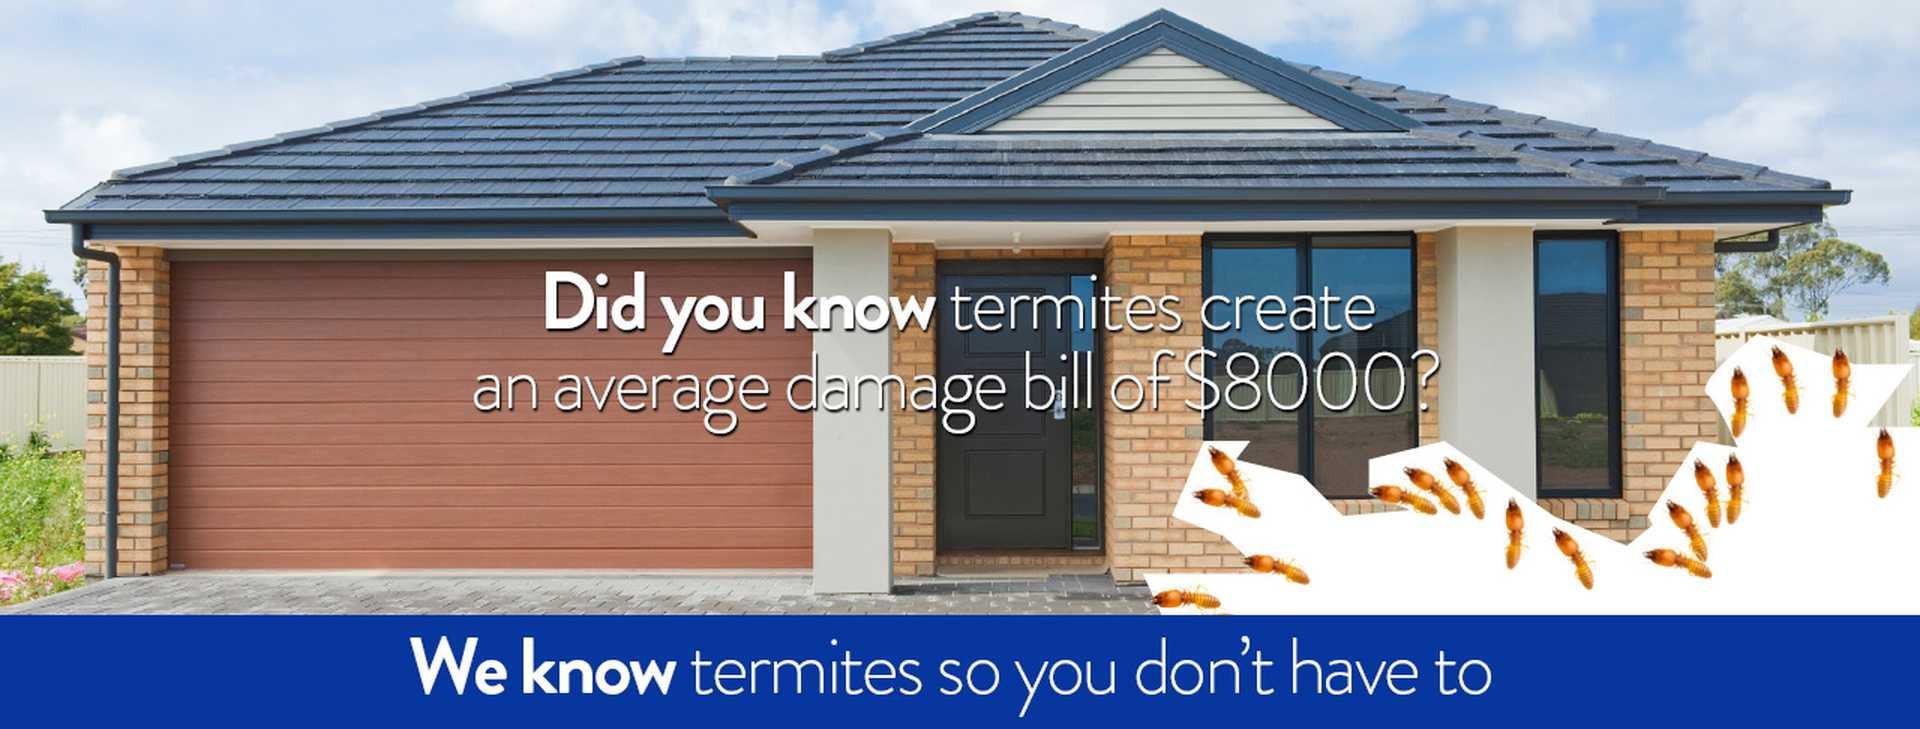 We know termites so you don't have to.